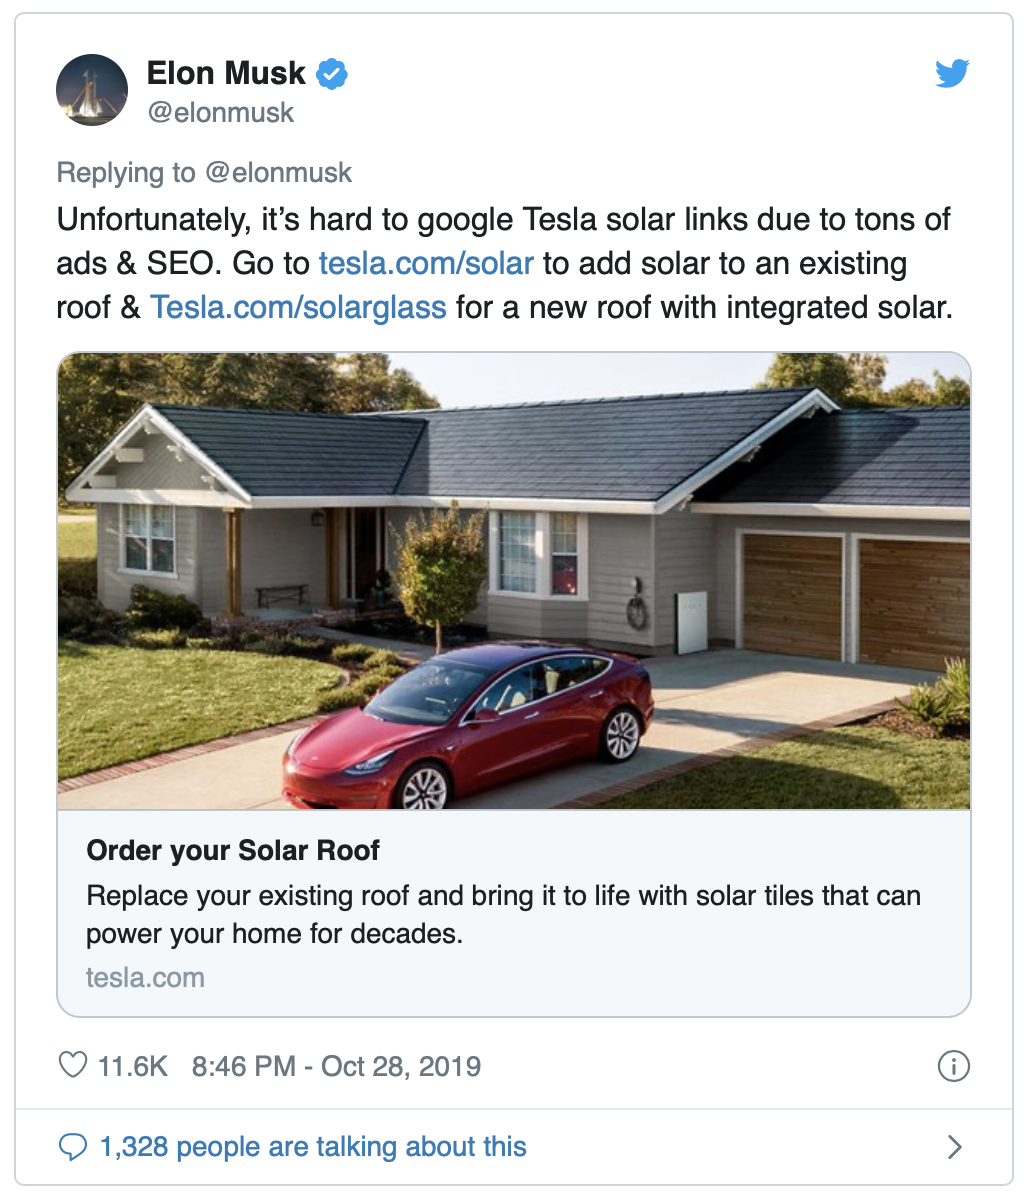 Elon Musk:   Unfortunately, it's hard to google Tesla solar links due to tons of ads & SEO